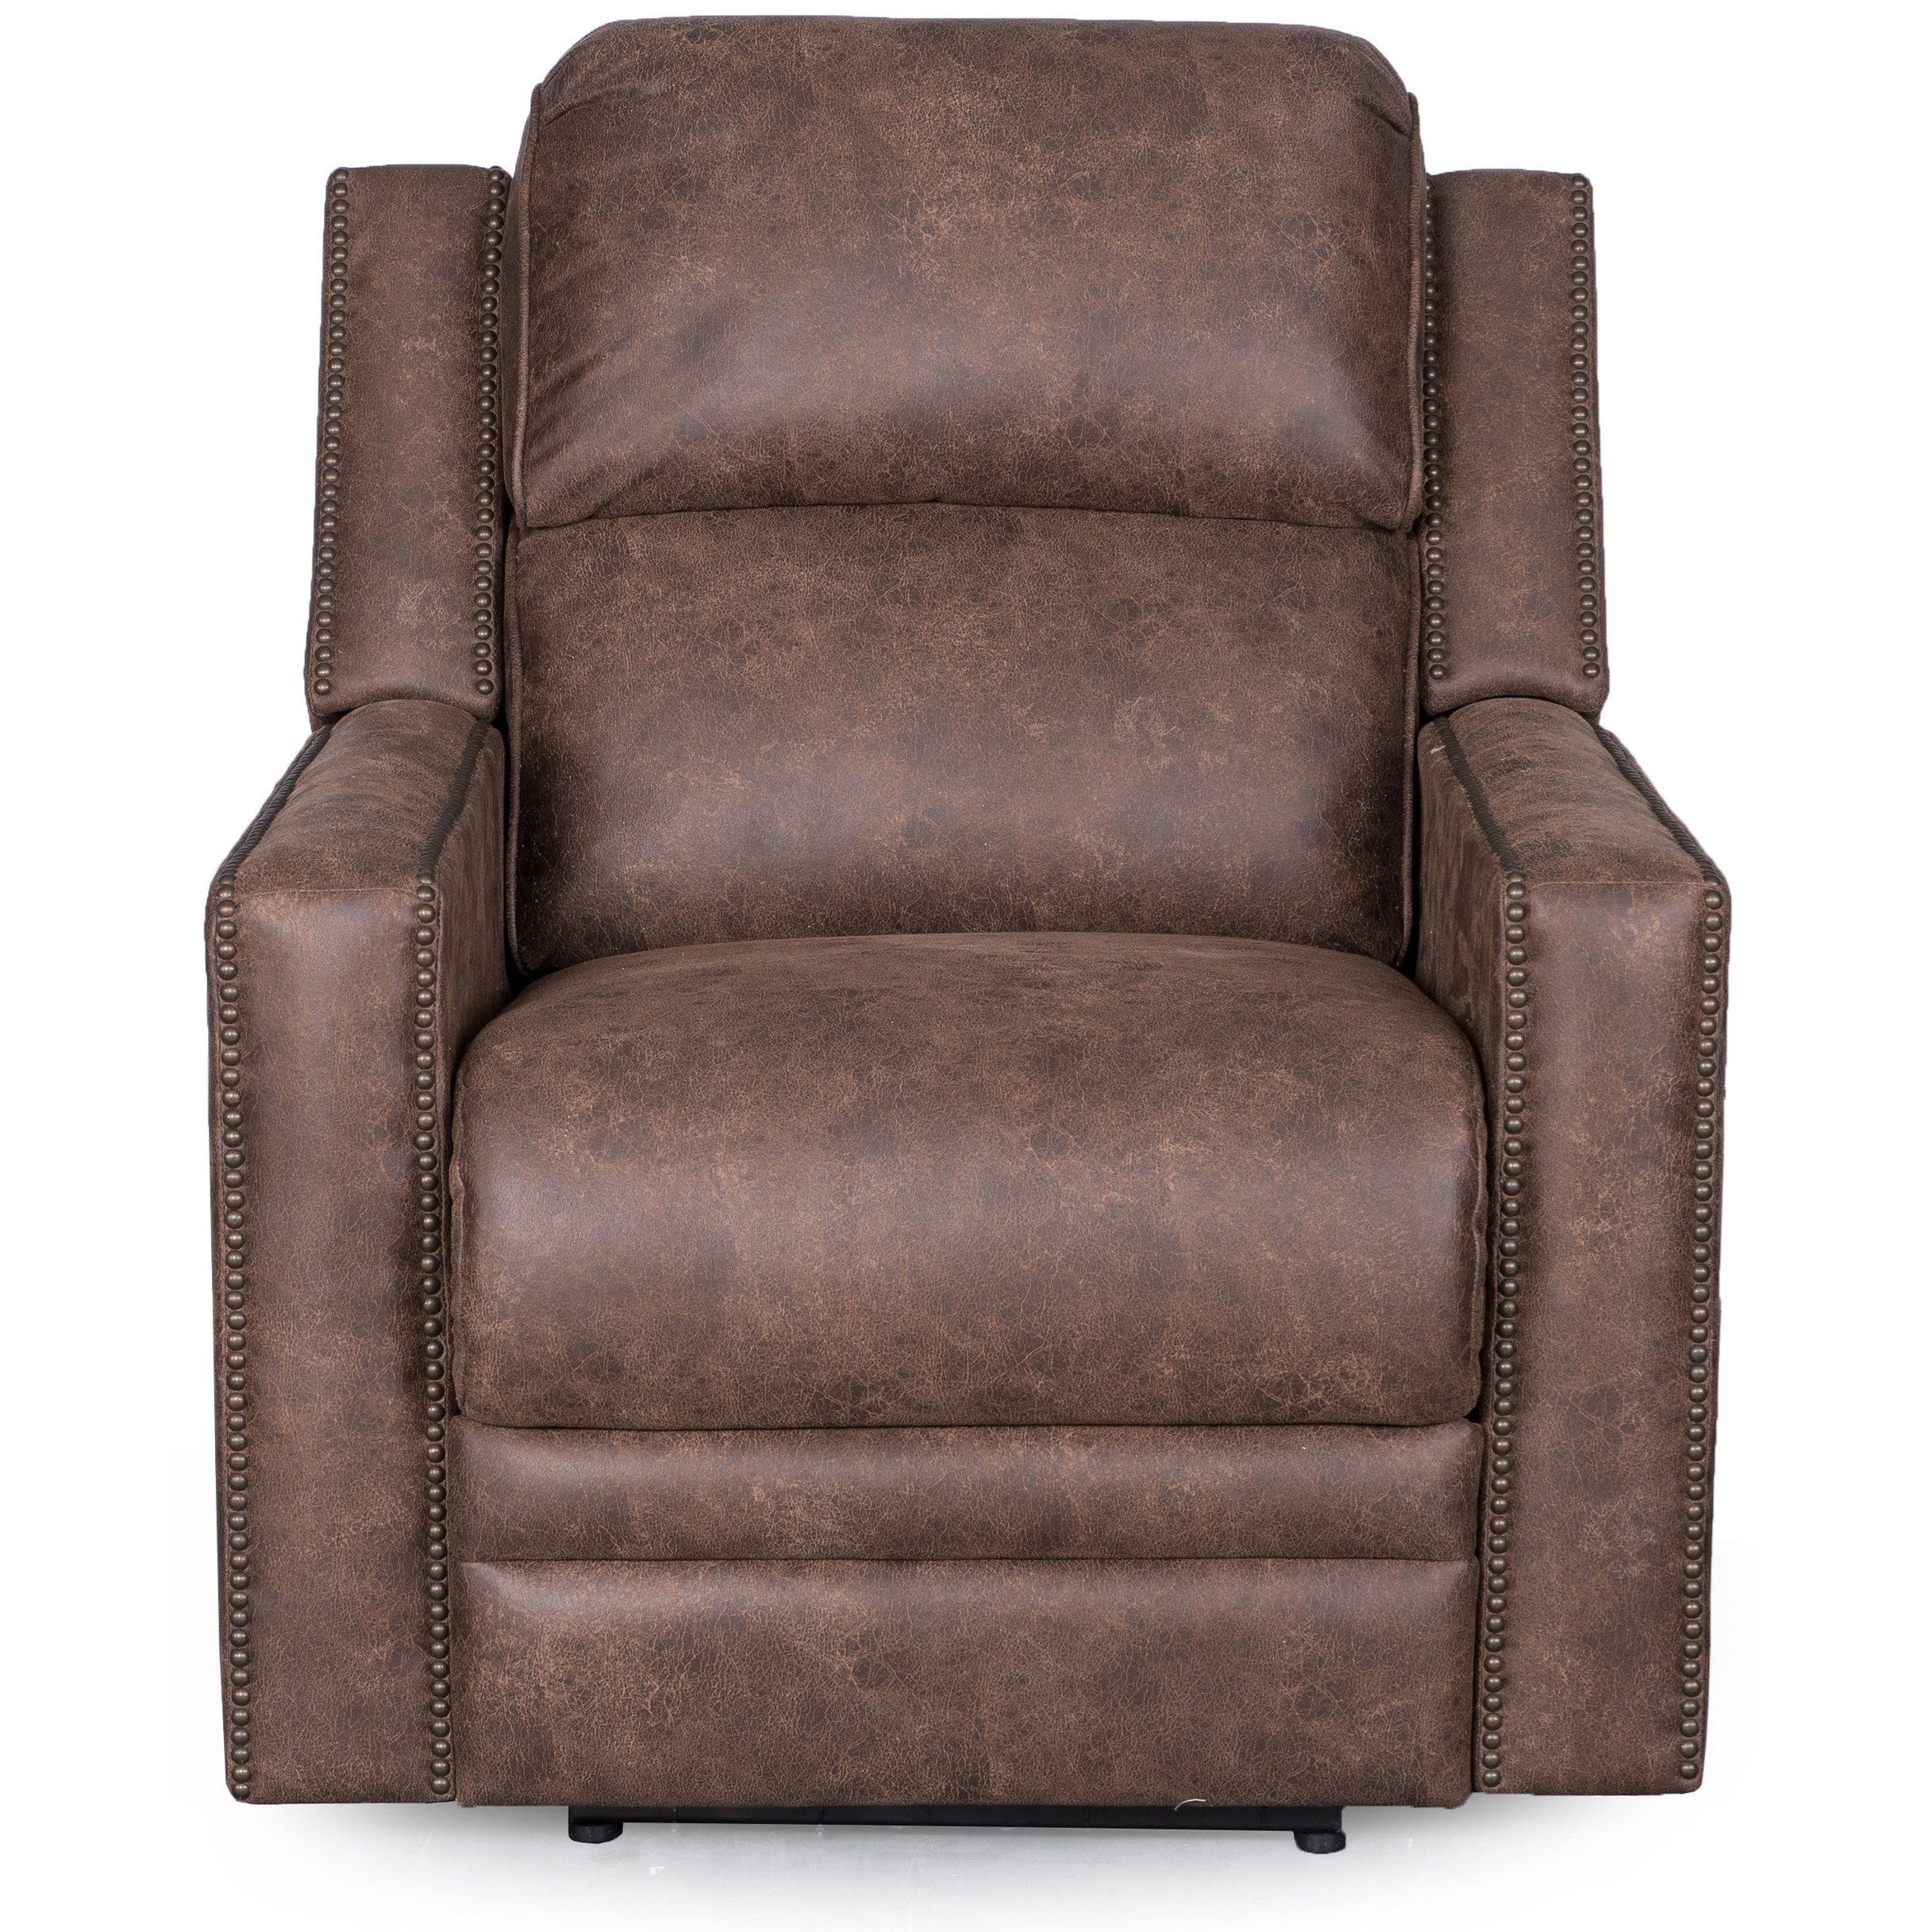 Synergy Home Furnishings 1340 Recliner with Power Headrest - Item Number: 1340-85PHR-PasadenaElk